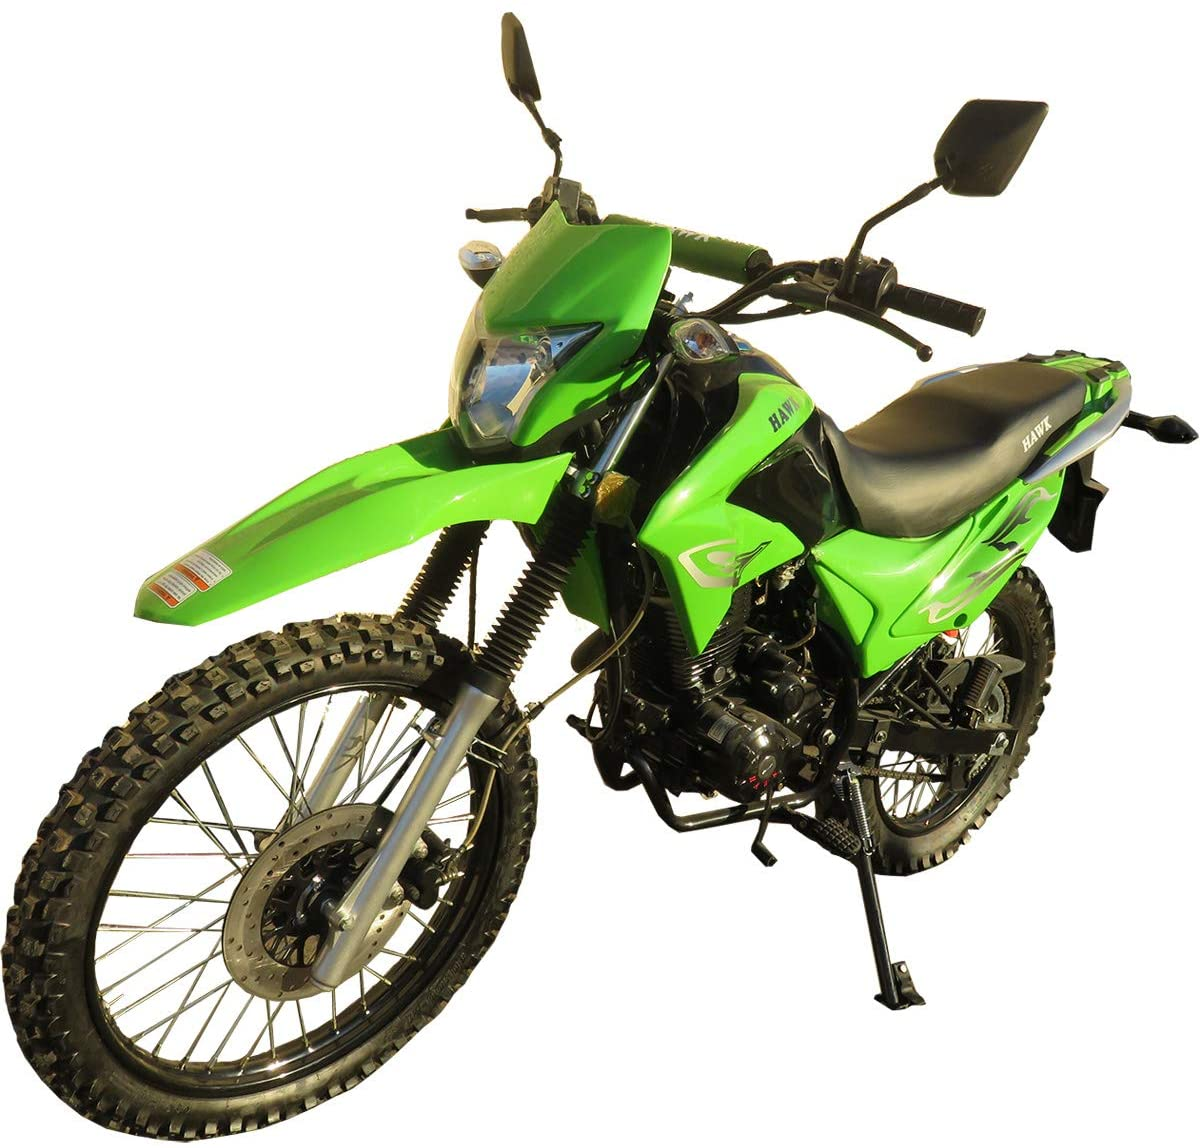 Review of RPS 250cc Dirt Bike Hawk 250 Enduro Street Bike Motorcycle Bike